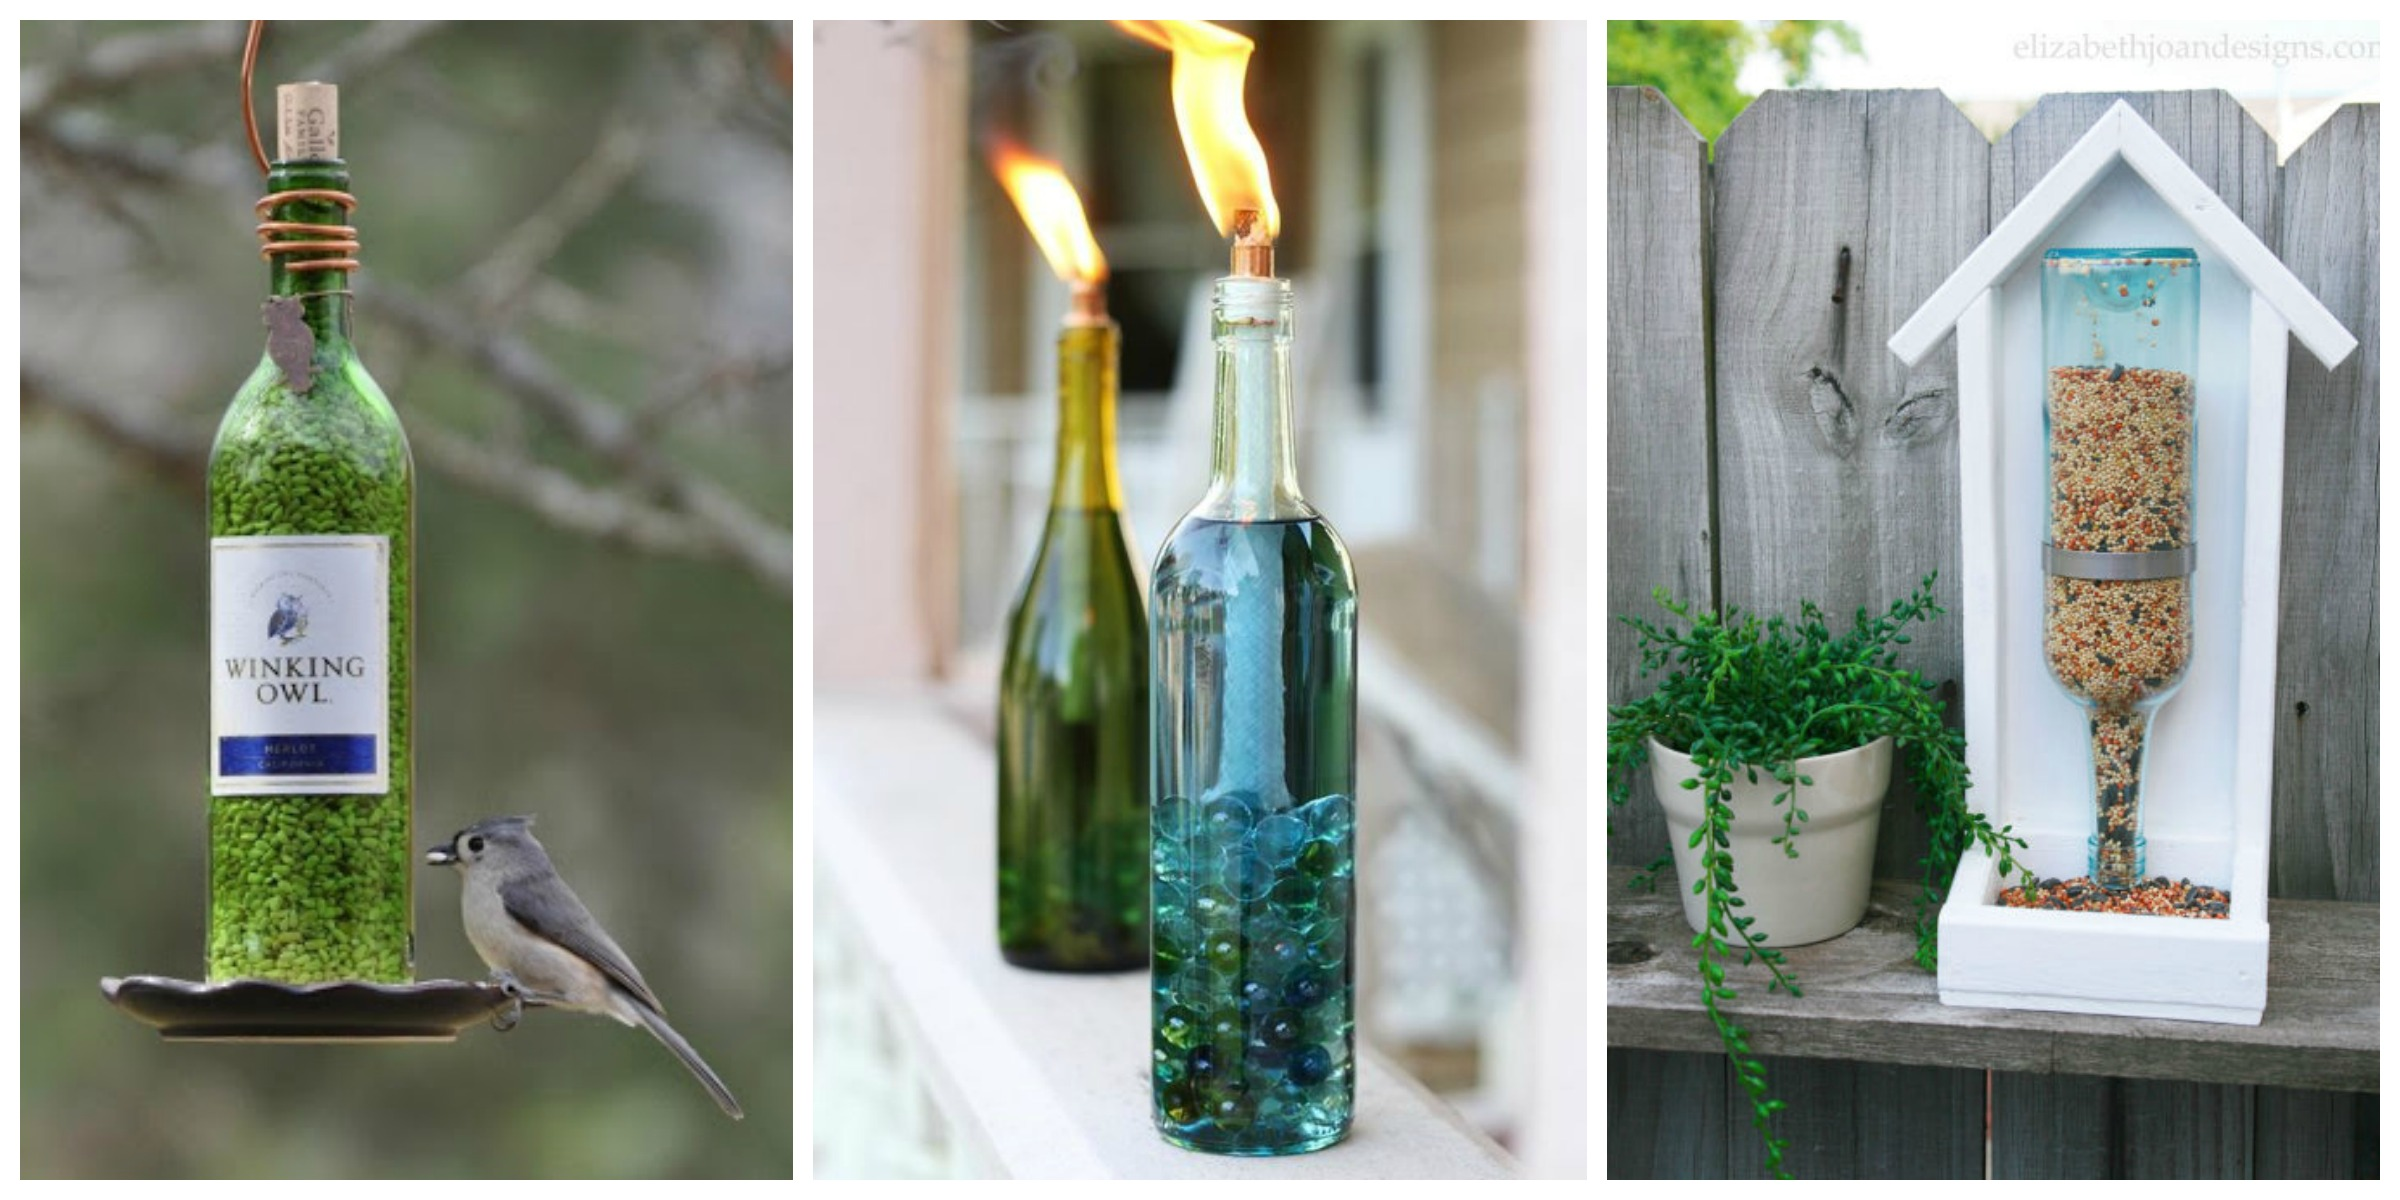 Wine bottle garden crafts how to use recycled bottles in for How to use wine bottles in the garden